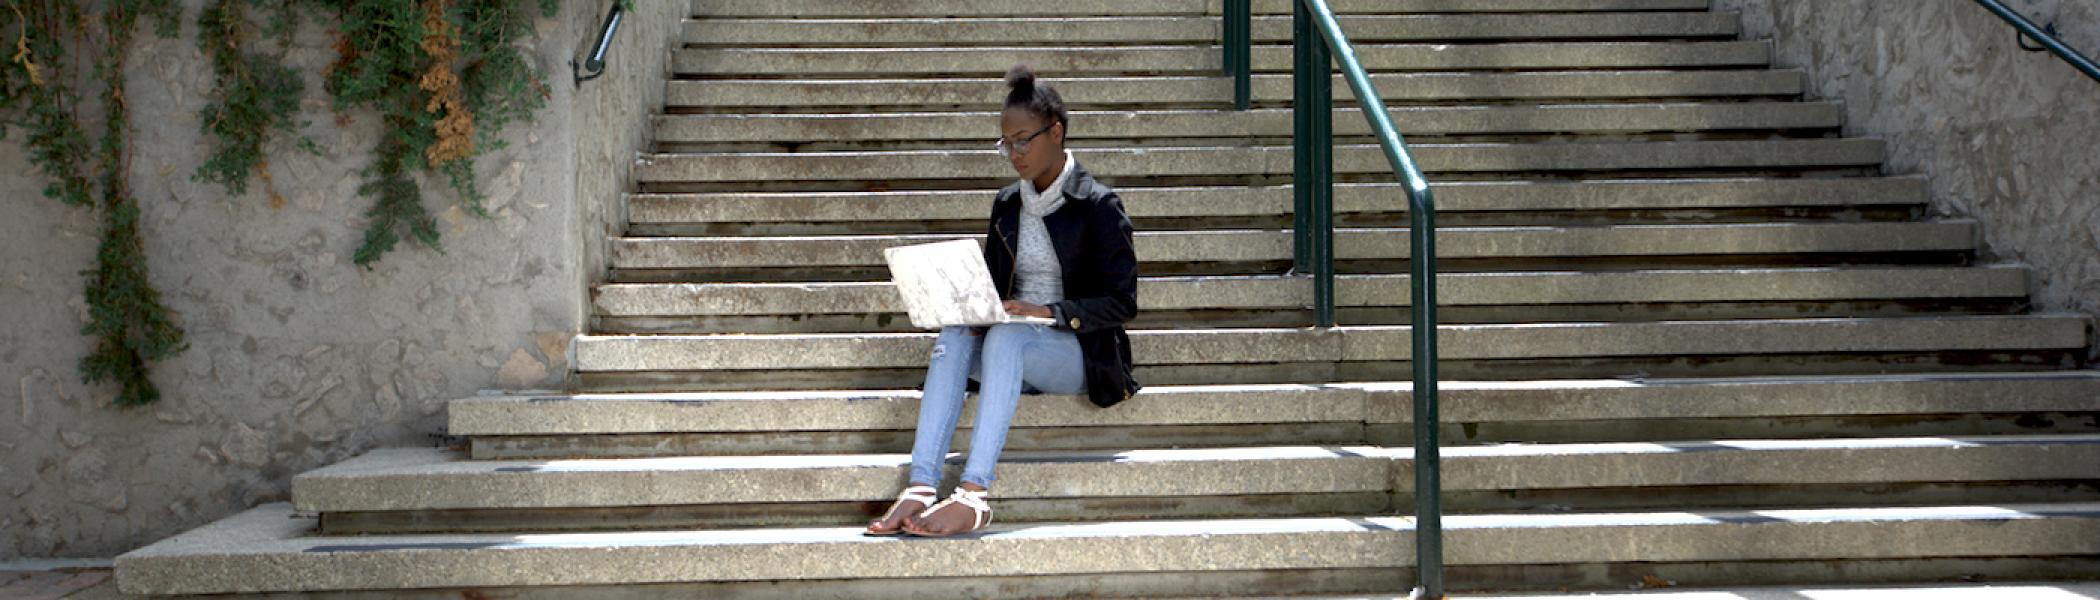 A student working on a laptop outside on stairs